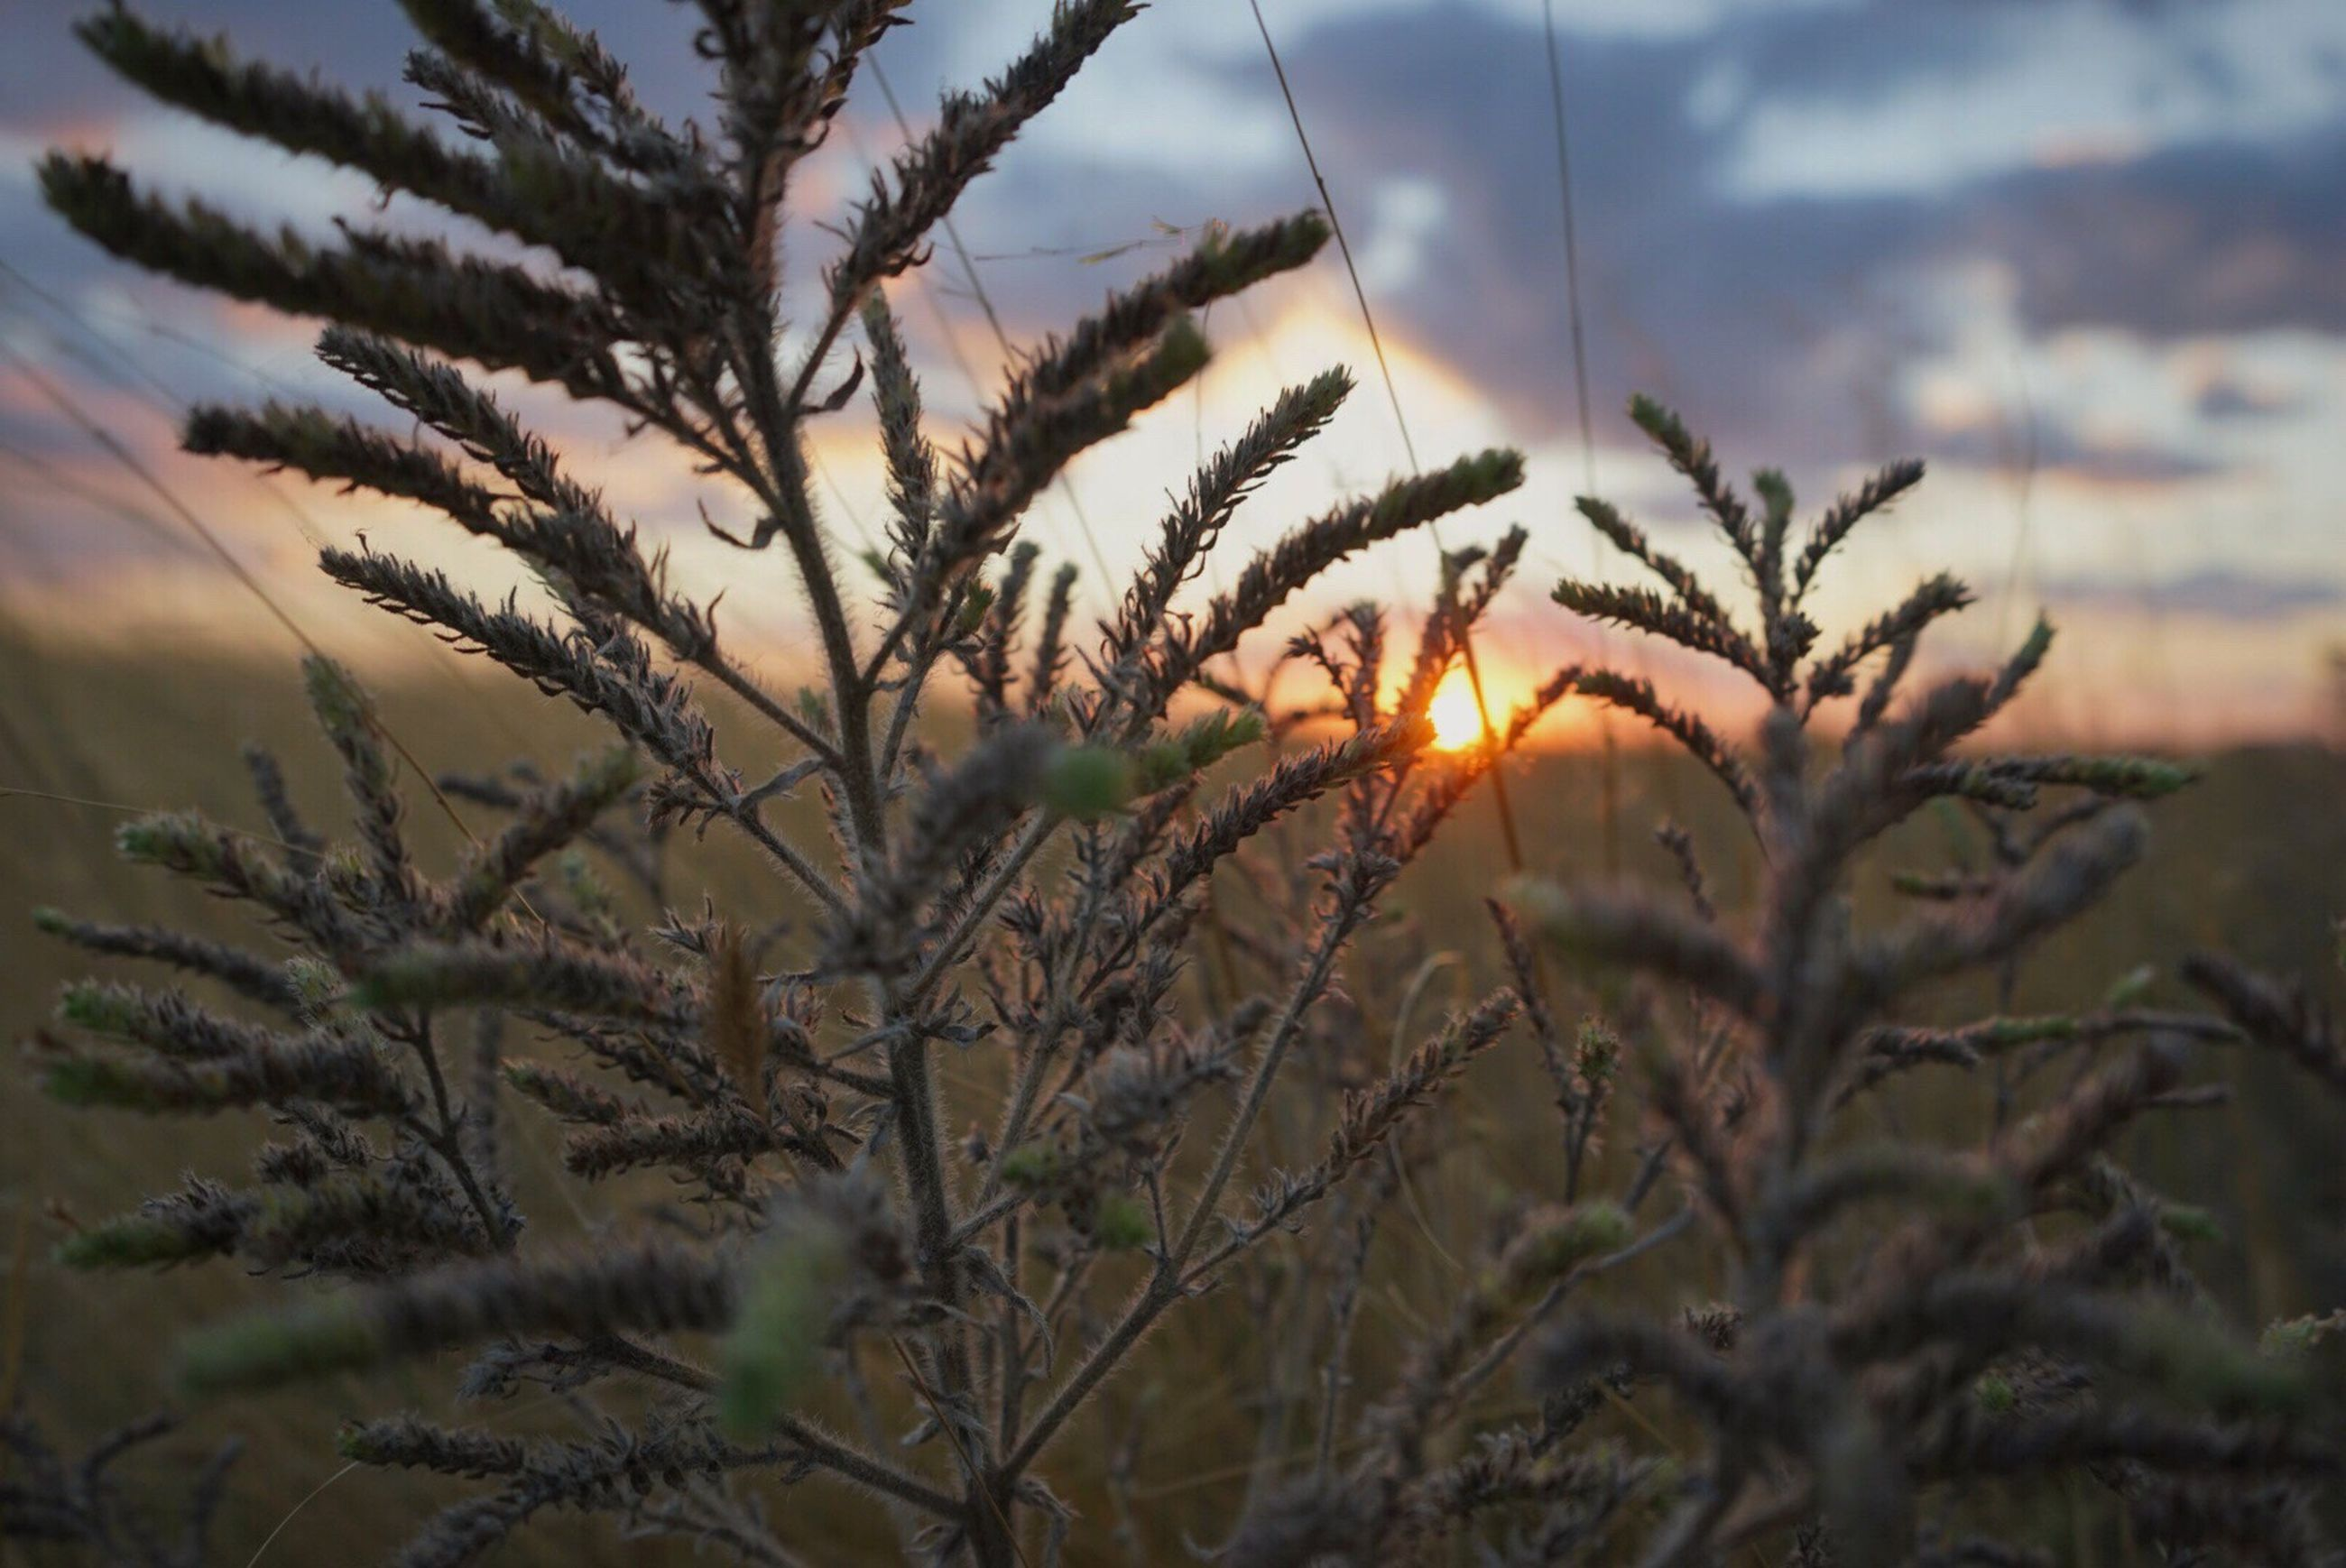 sunset, growth, plant, sun, stem, close-up, focus on foreground, beauty in nature, nature, field, sky, scenics, uncultivated, tranquility, tranquil scene, meadow, botany, sunrise - dawn, fragility, outdoors, back lit, freshness, growing, non-urban scene, moody sky, no people, majestic